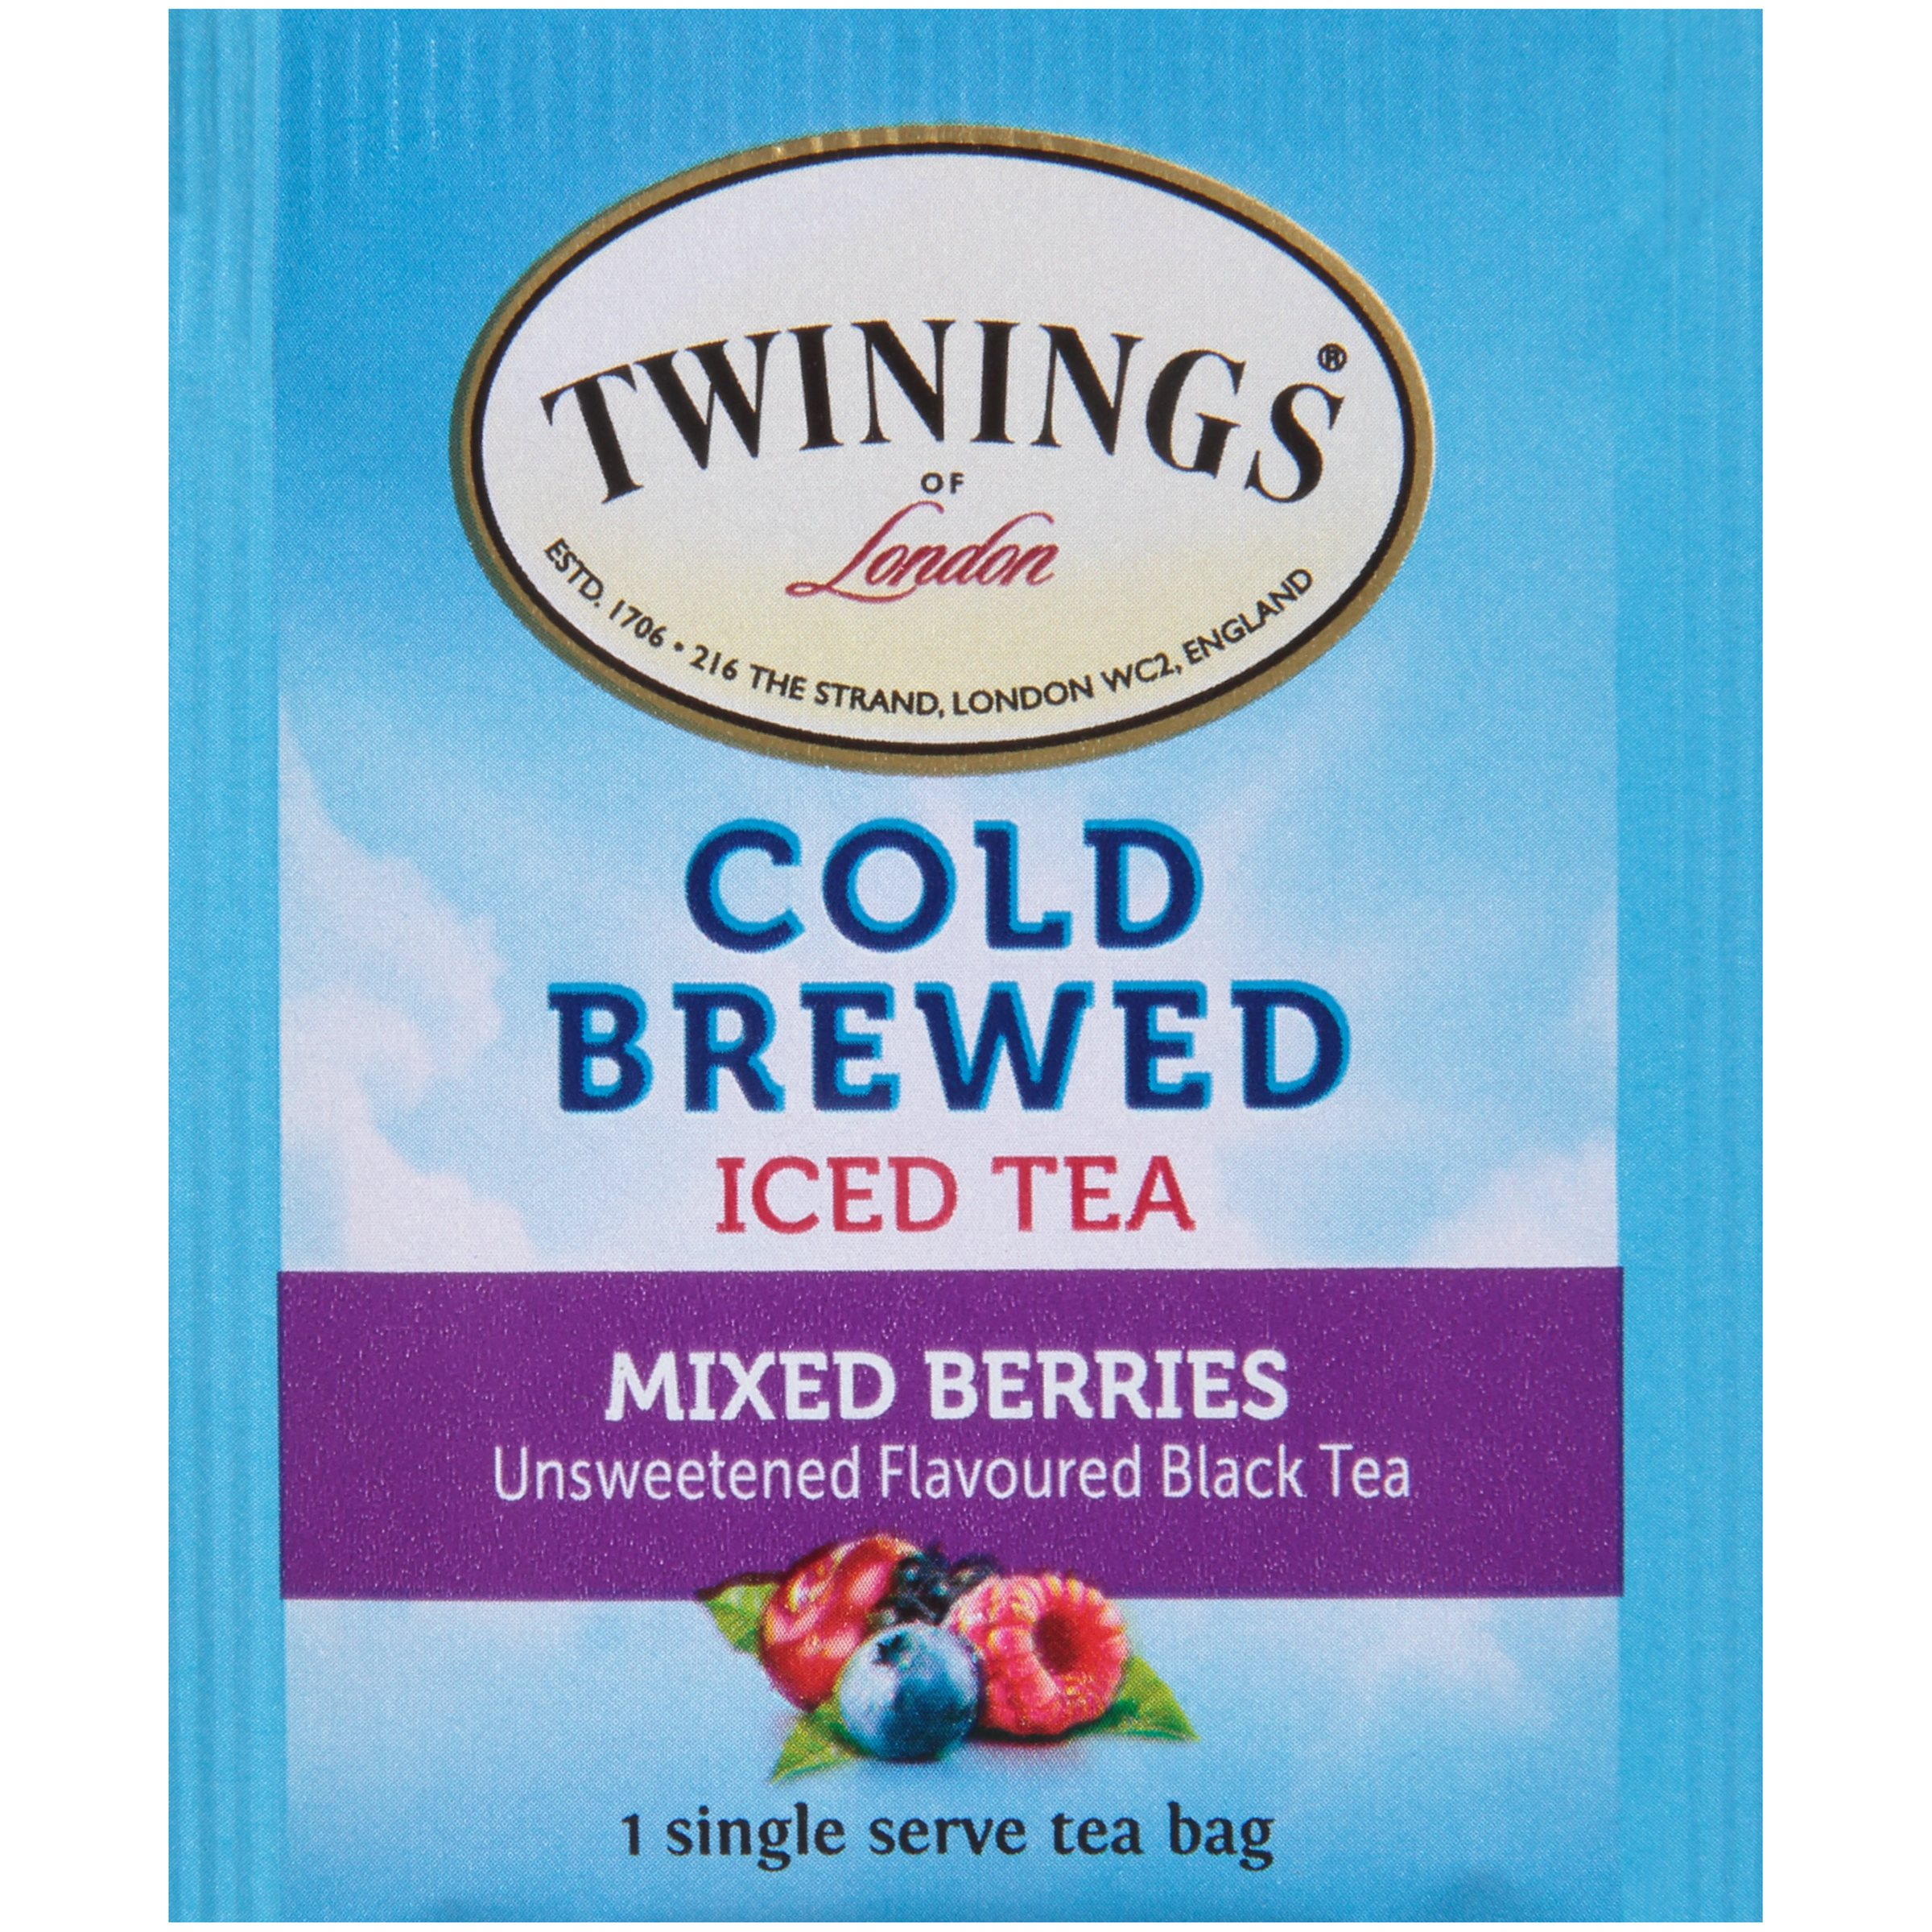 Twinings Of LondonMixed Berries Cold Brewed Iced Tea 20 Ct Bags 1 41 Oz Box